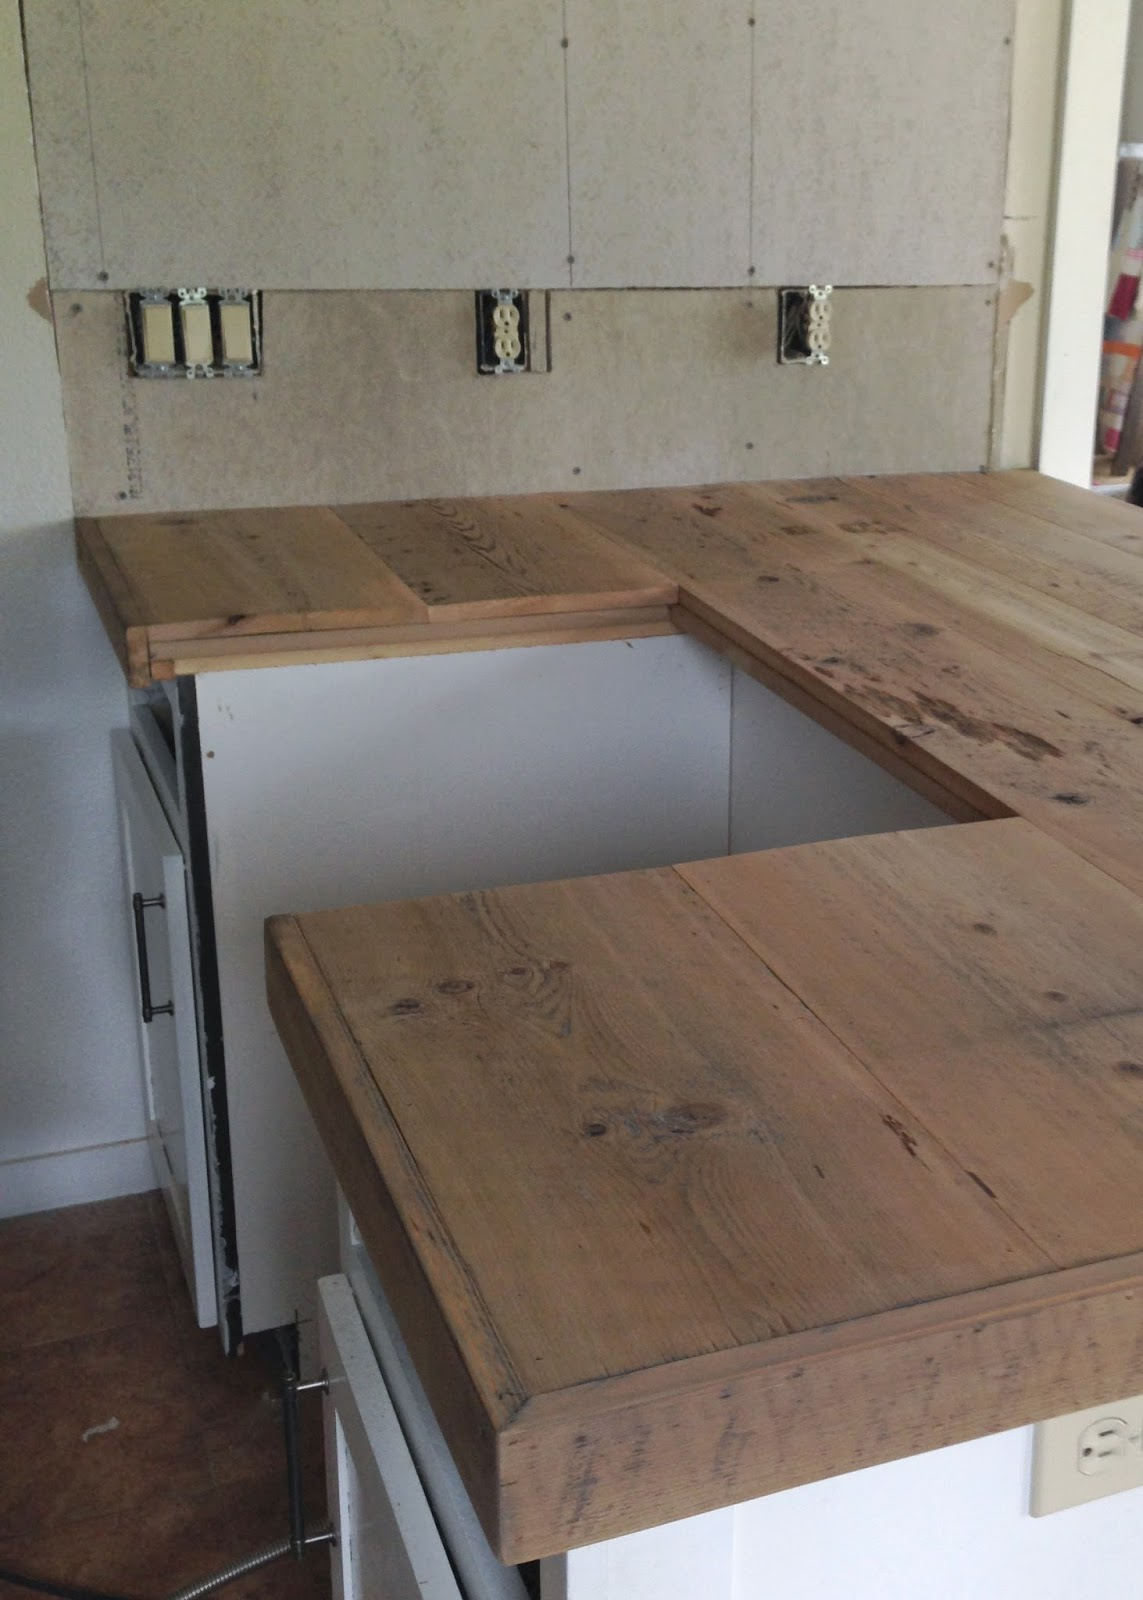 DIY Reclaimed Wood Countertop - adding trim boards along edge - DIY Reclaimed Wood Countertop Averie Lane: DIY Reclaimed Wood